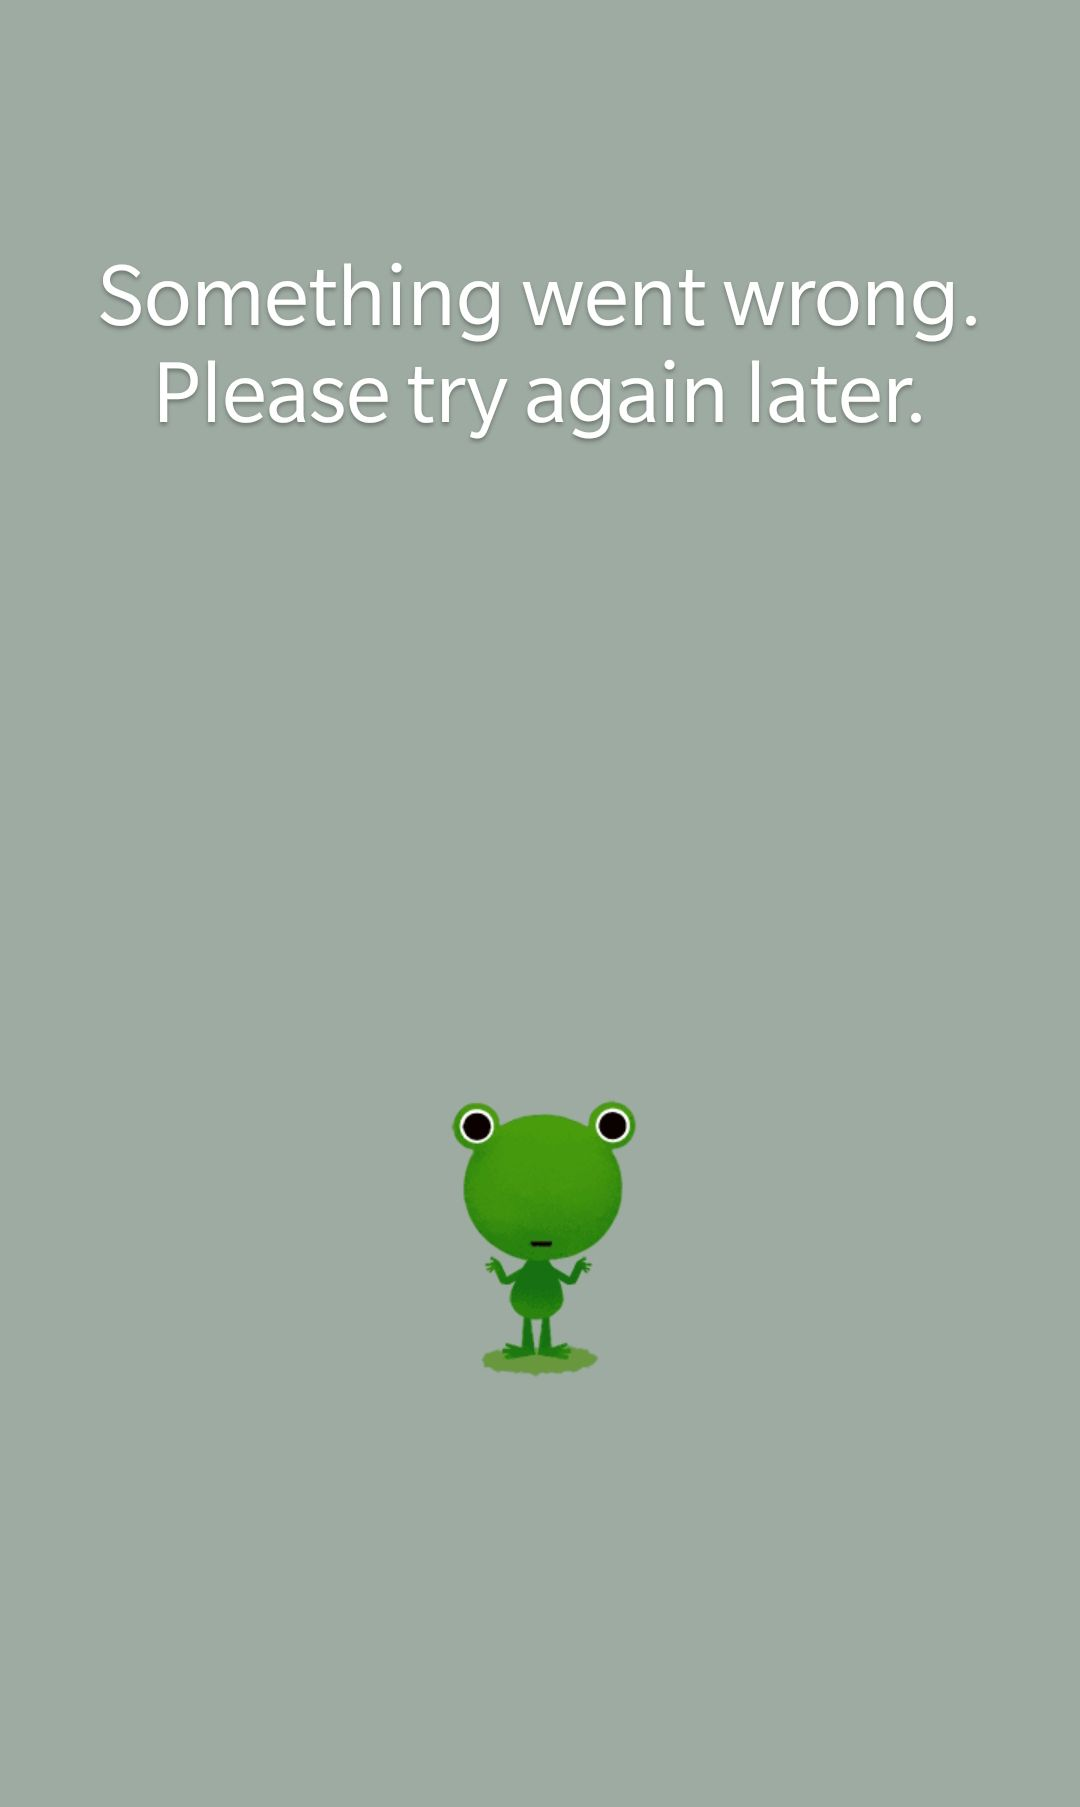 Android Google weather frog error (Something went wrong